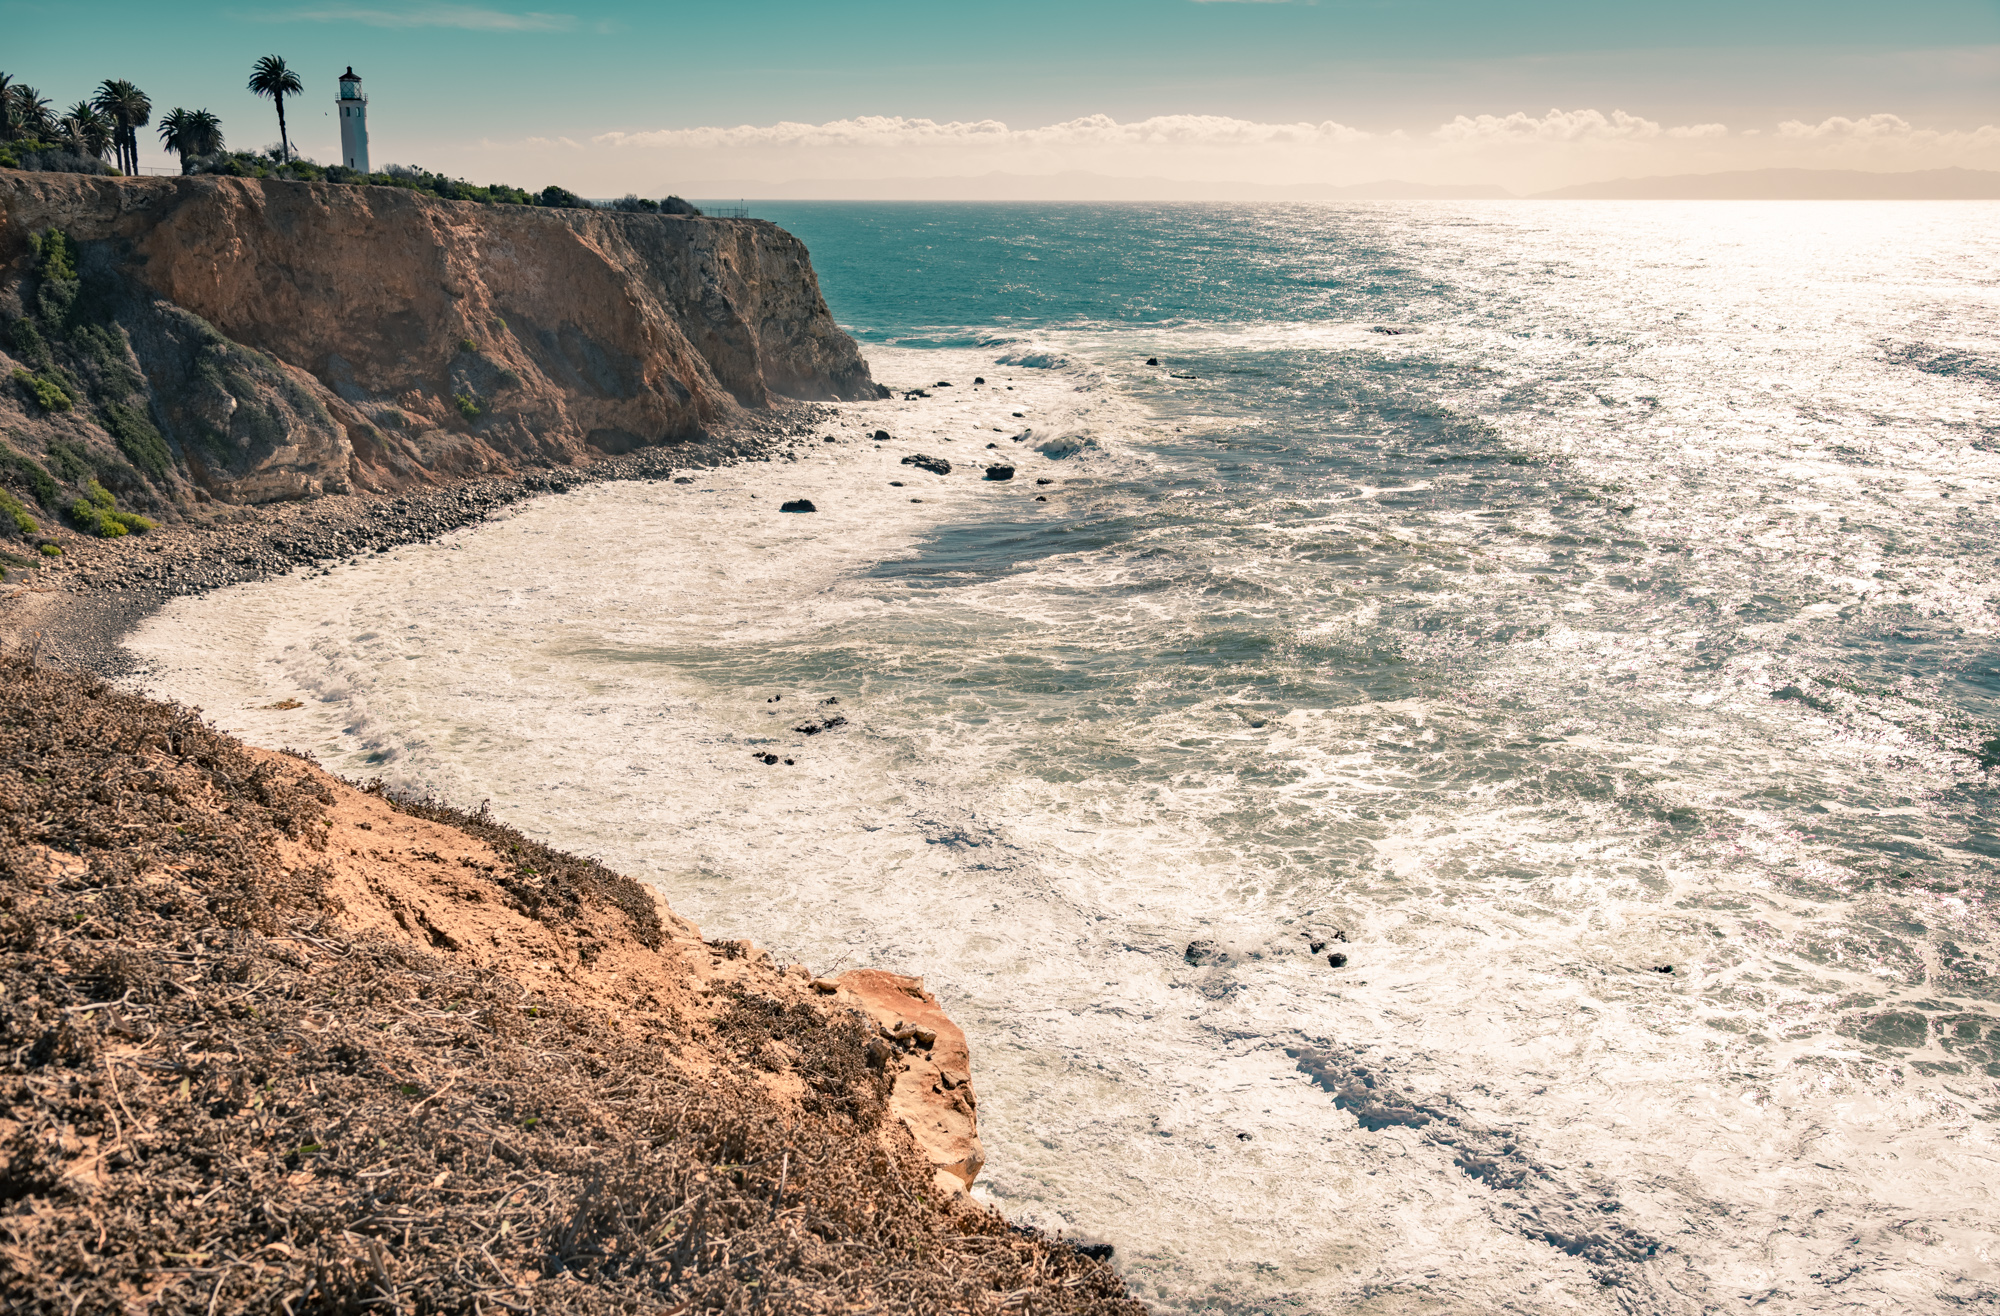 View of the Point Vicente Lighthouse over the rocky cliffs